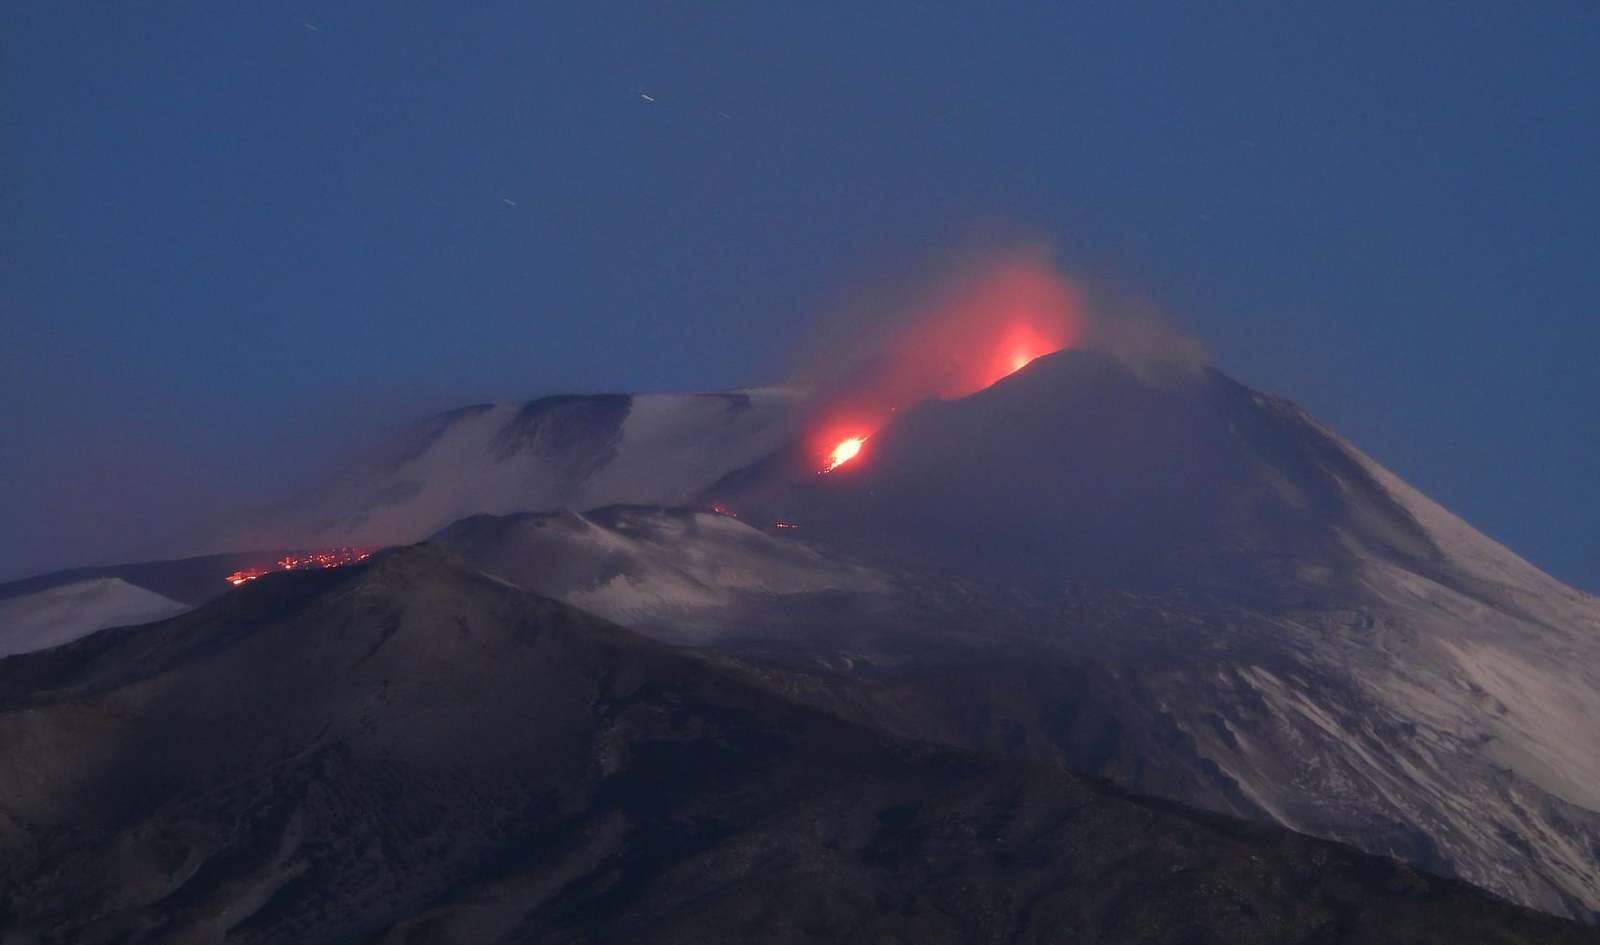 Etna de Tremestieri Etnéo (south ethnean slope), weak Strombolian activity and several incandescent points along the lava flow towards the southwest - photo Boris behncle 14.12.2020 early morning